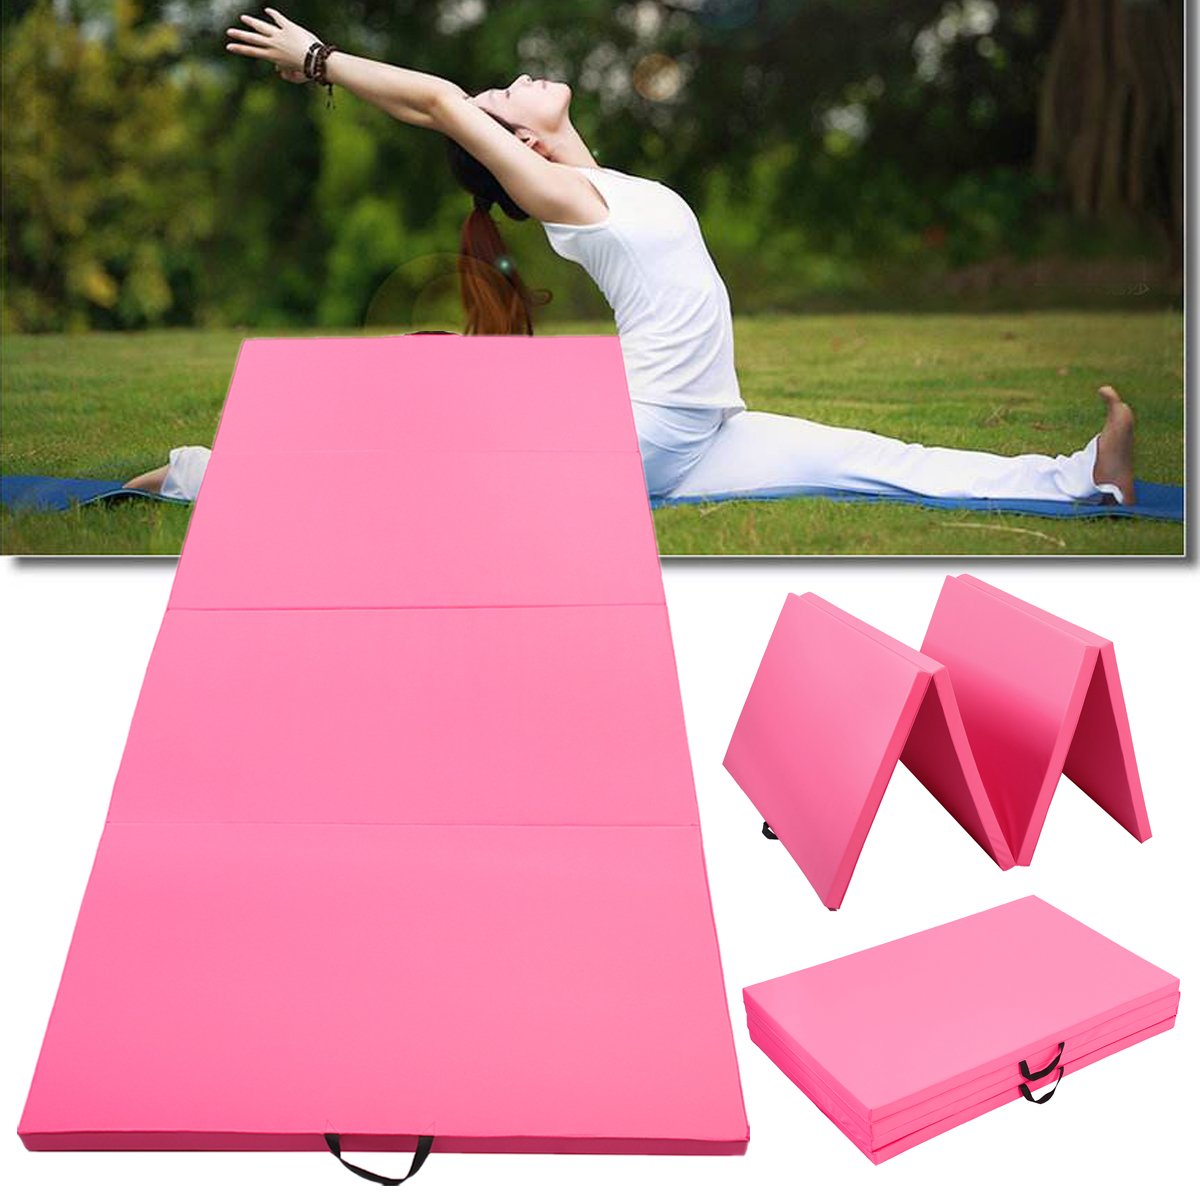 118x47x1.96inch Folding Gymnastics Mat Yoga Mat Gym Exercise Pad Blankets Mat for Indoor Training Body Building 180x60x5cm folding panel gymnastics mat gym exercise yoga mats pad yoga blankets for outdoor training body building